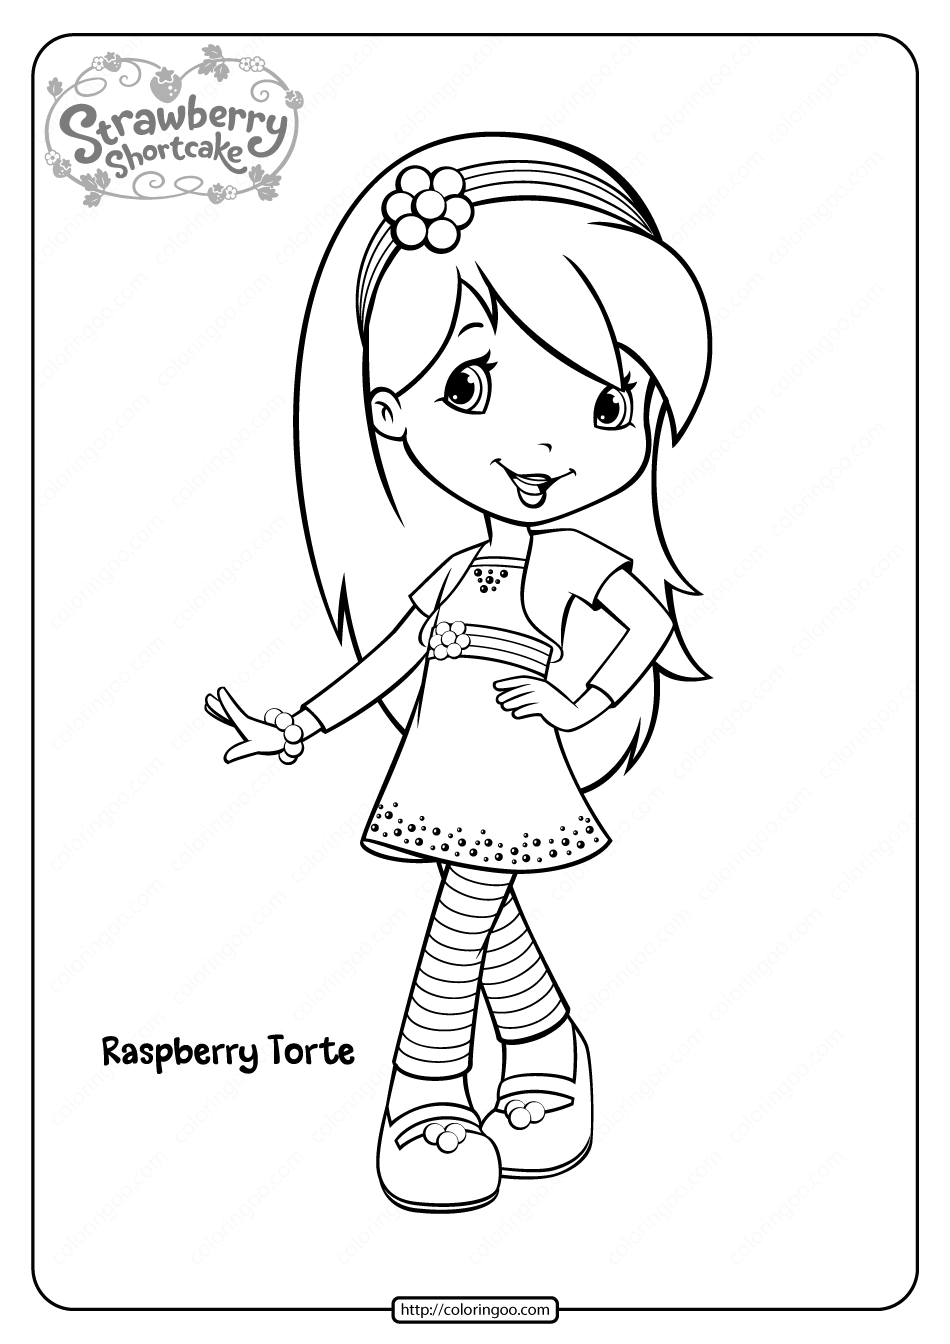 Raspberry Torte Printable Coloring Pages